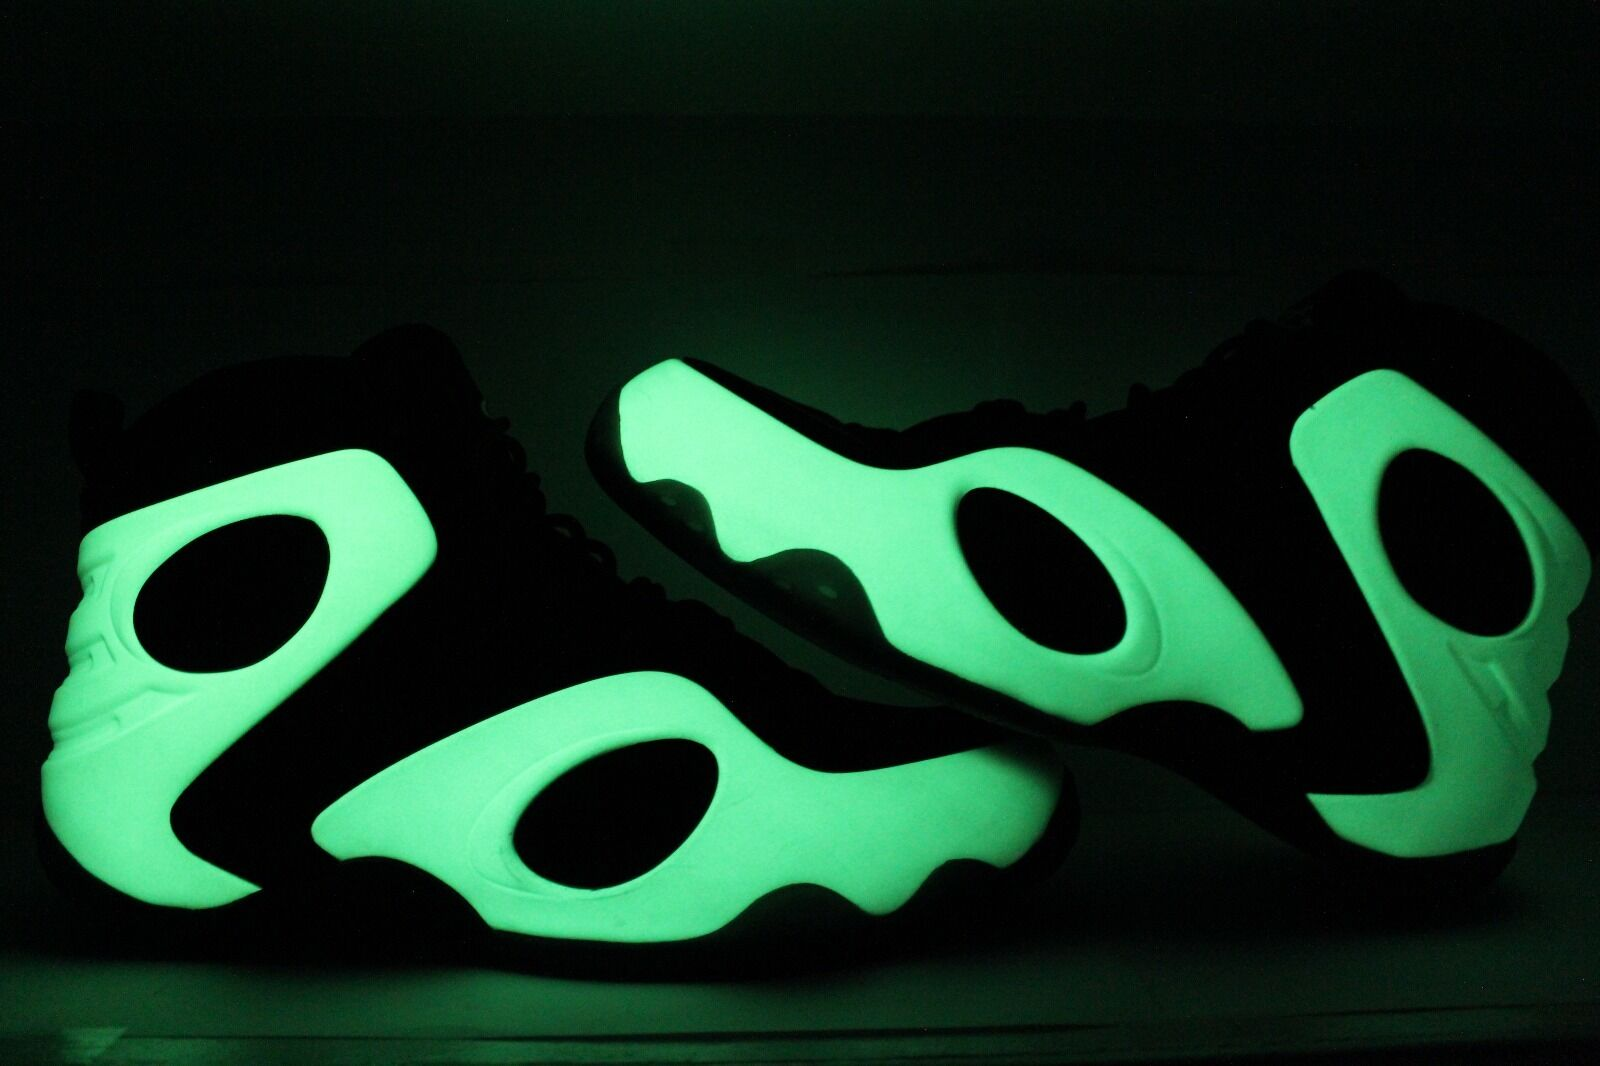 NIKE ZOOM ROOKIE FOAMPOSITE LUMINOUS Price reduction Seasonal price cuts, discount benefits